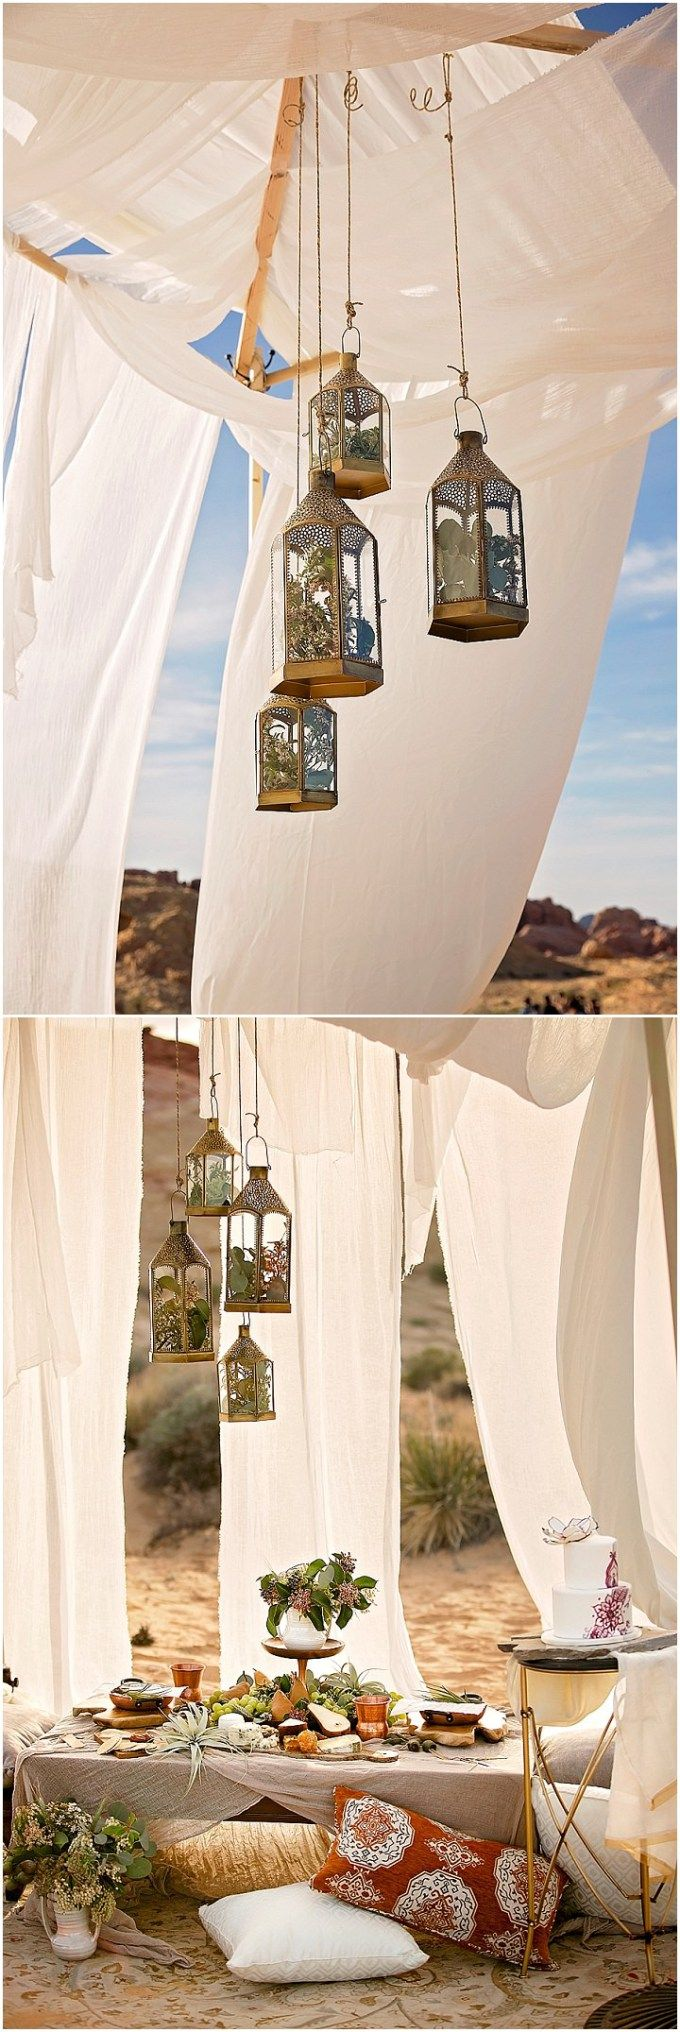 Moroccan Wedding Inspiration in the Valley of Fire | Pinterest ...